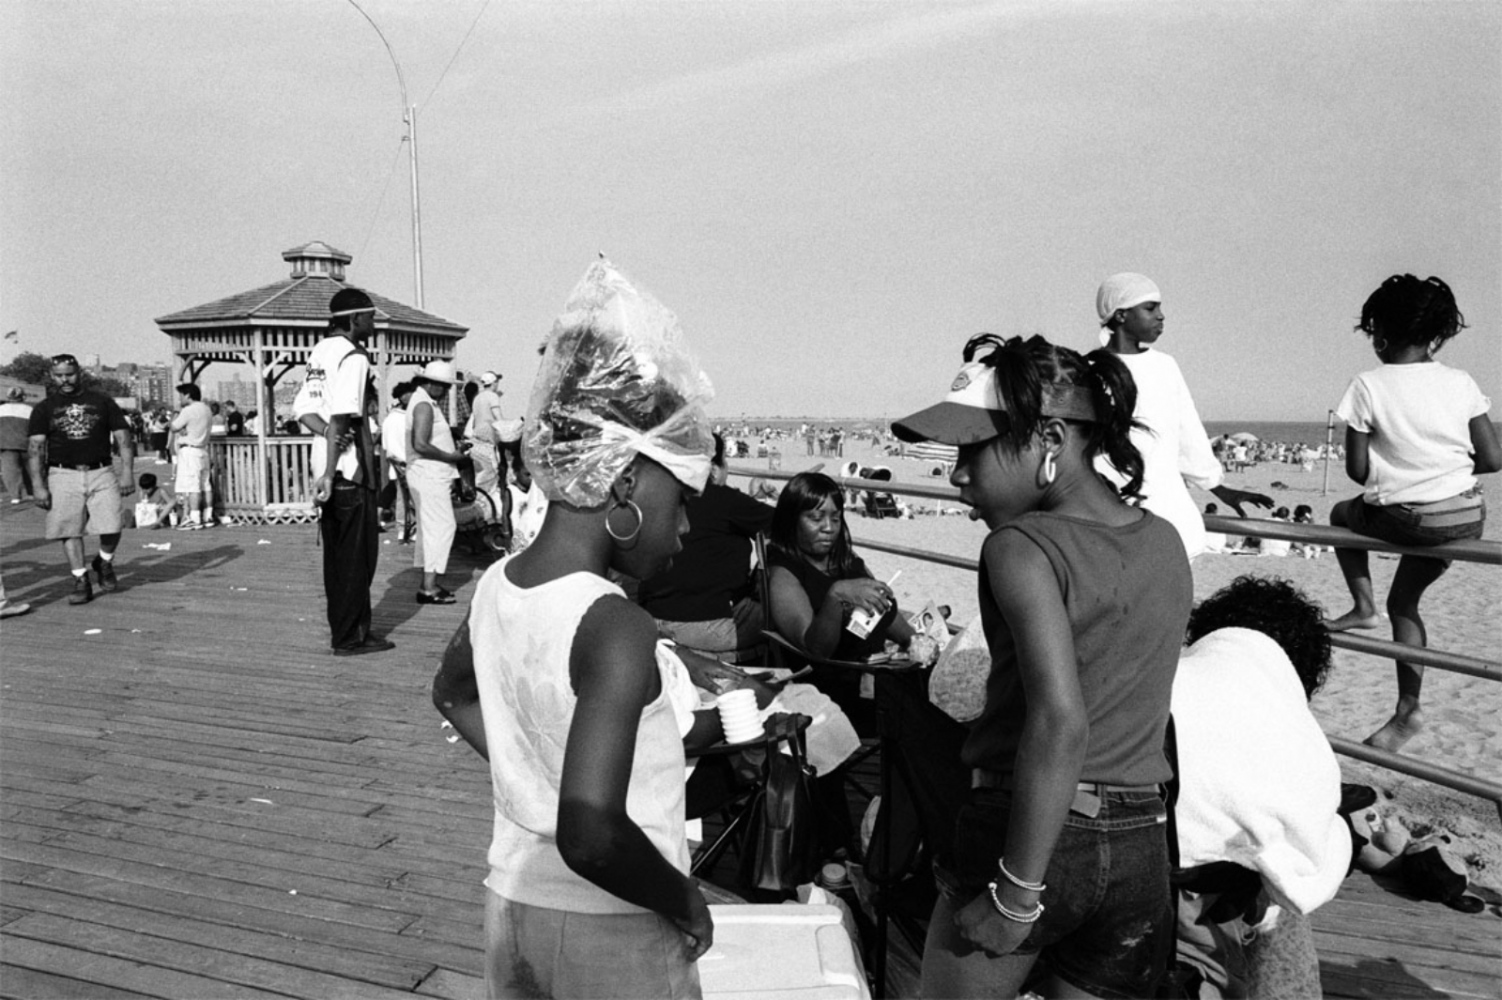 Plastic on Girl's Head, Coney Island, NY, July 4, 2004